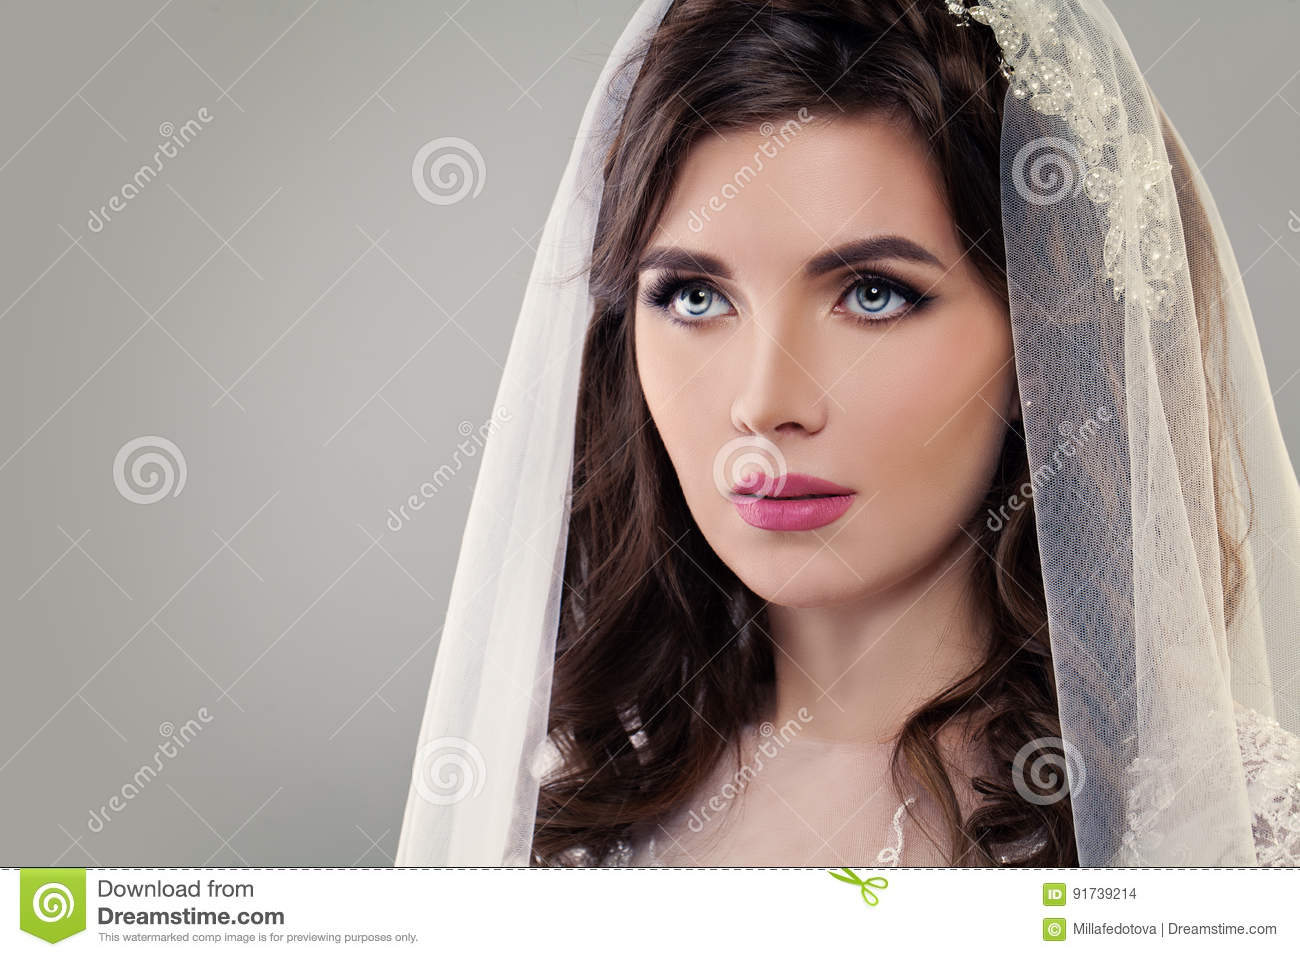 Cute Fiancee With Make Up Bridal Hairstyle And Veil Stock Photo